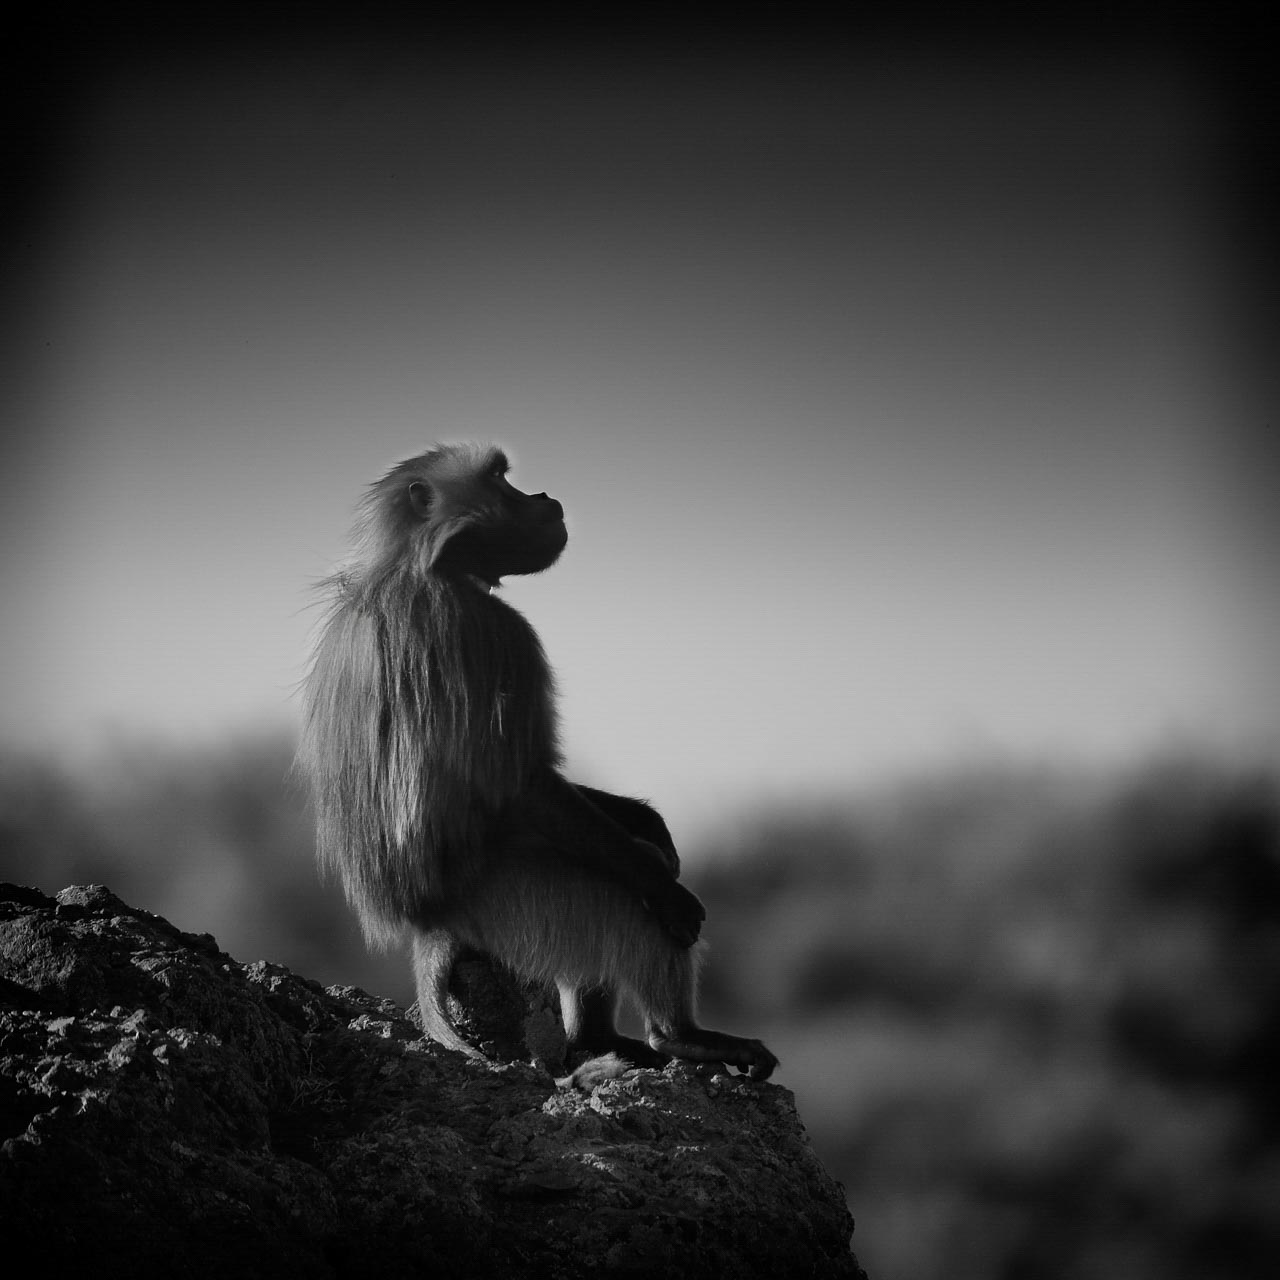 This photograph of a gelada sitting on a rock is an example of photography with a well-managed tonality.